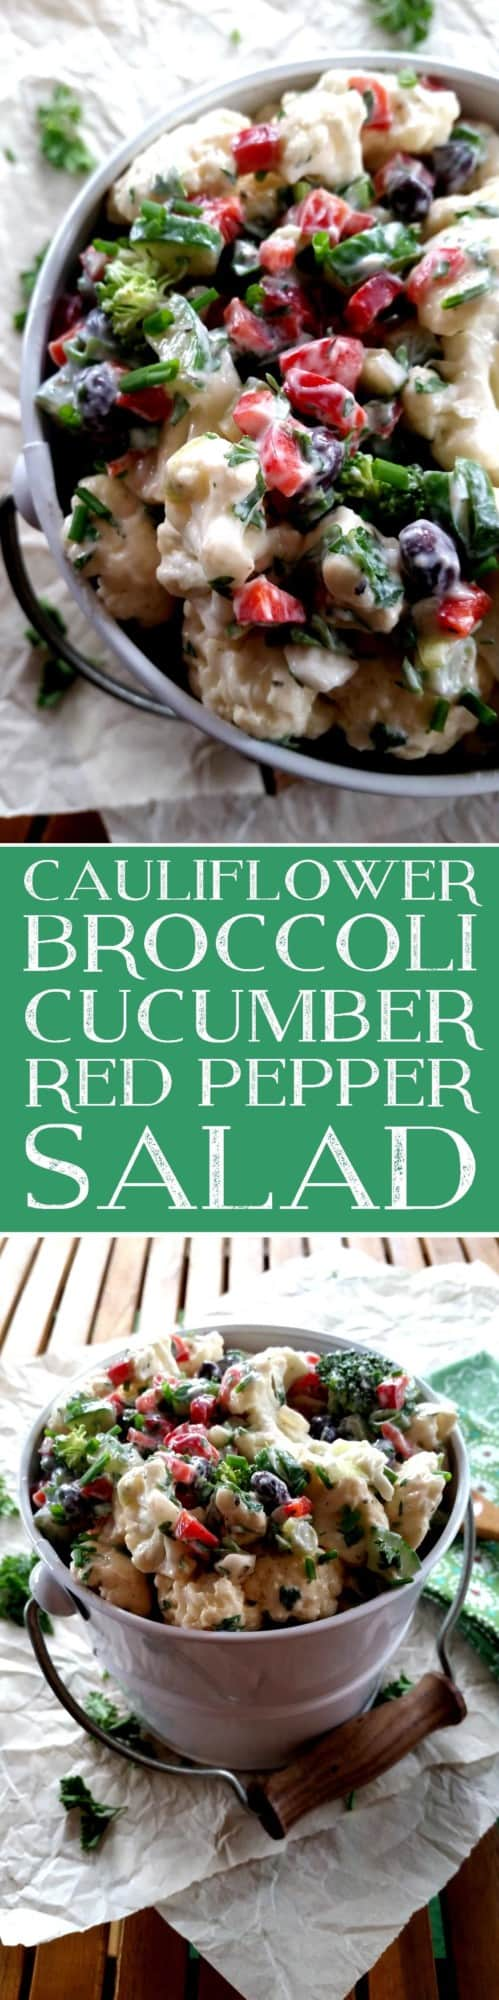 Cauliflower Broccoli Cucumber Red Pepper Salad